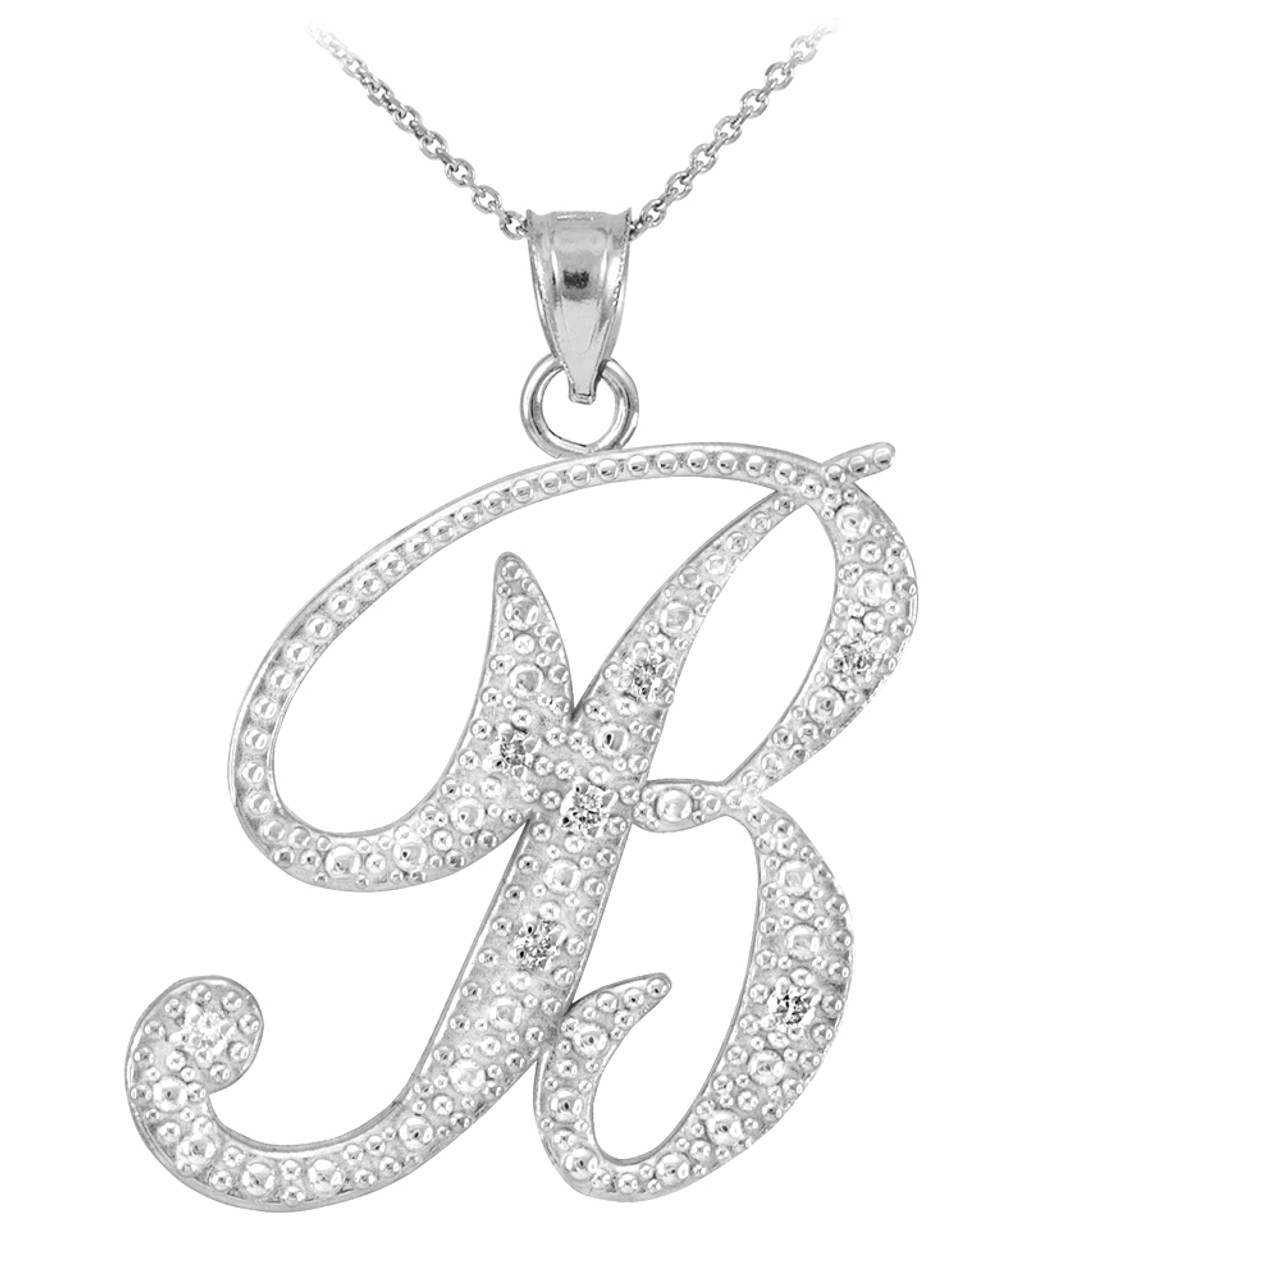 14k white gold cursive b initial diamond pendant necklace 14k white gold letter script b diamond initial pendant necklace mozeypictures Image collections